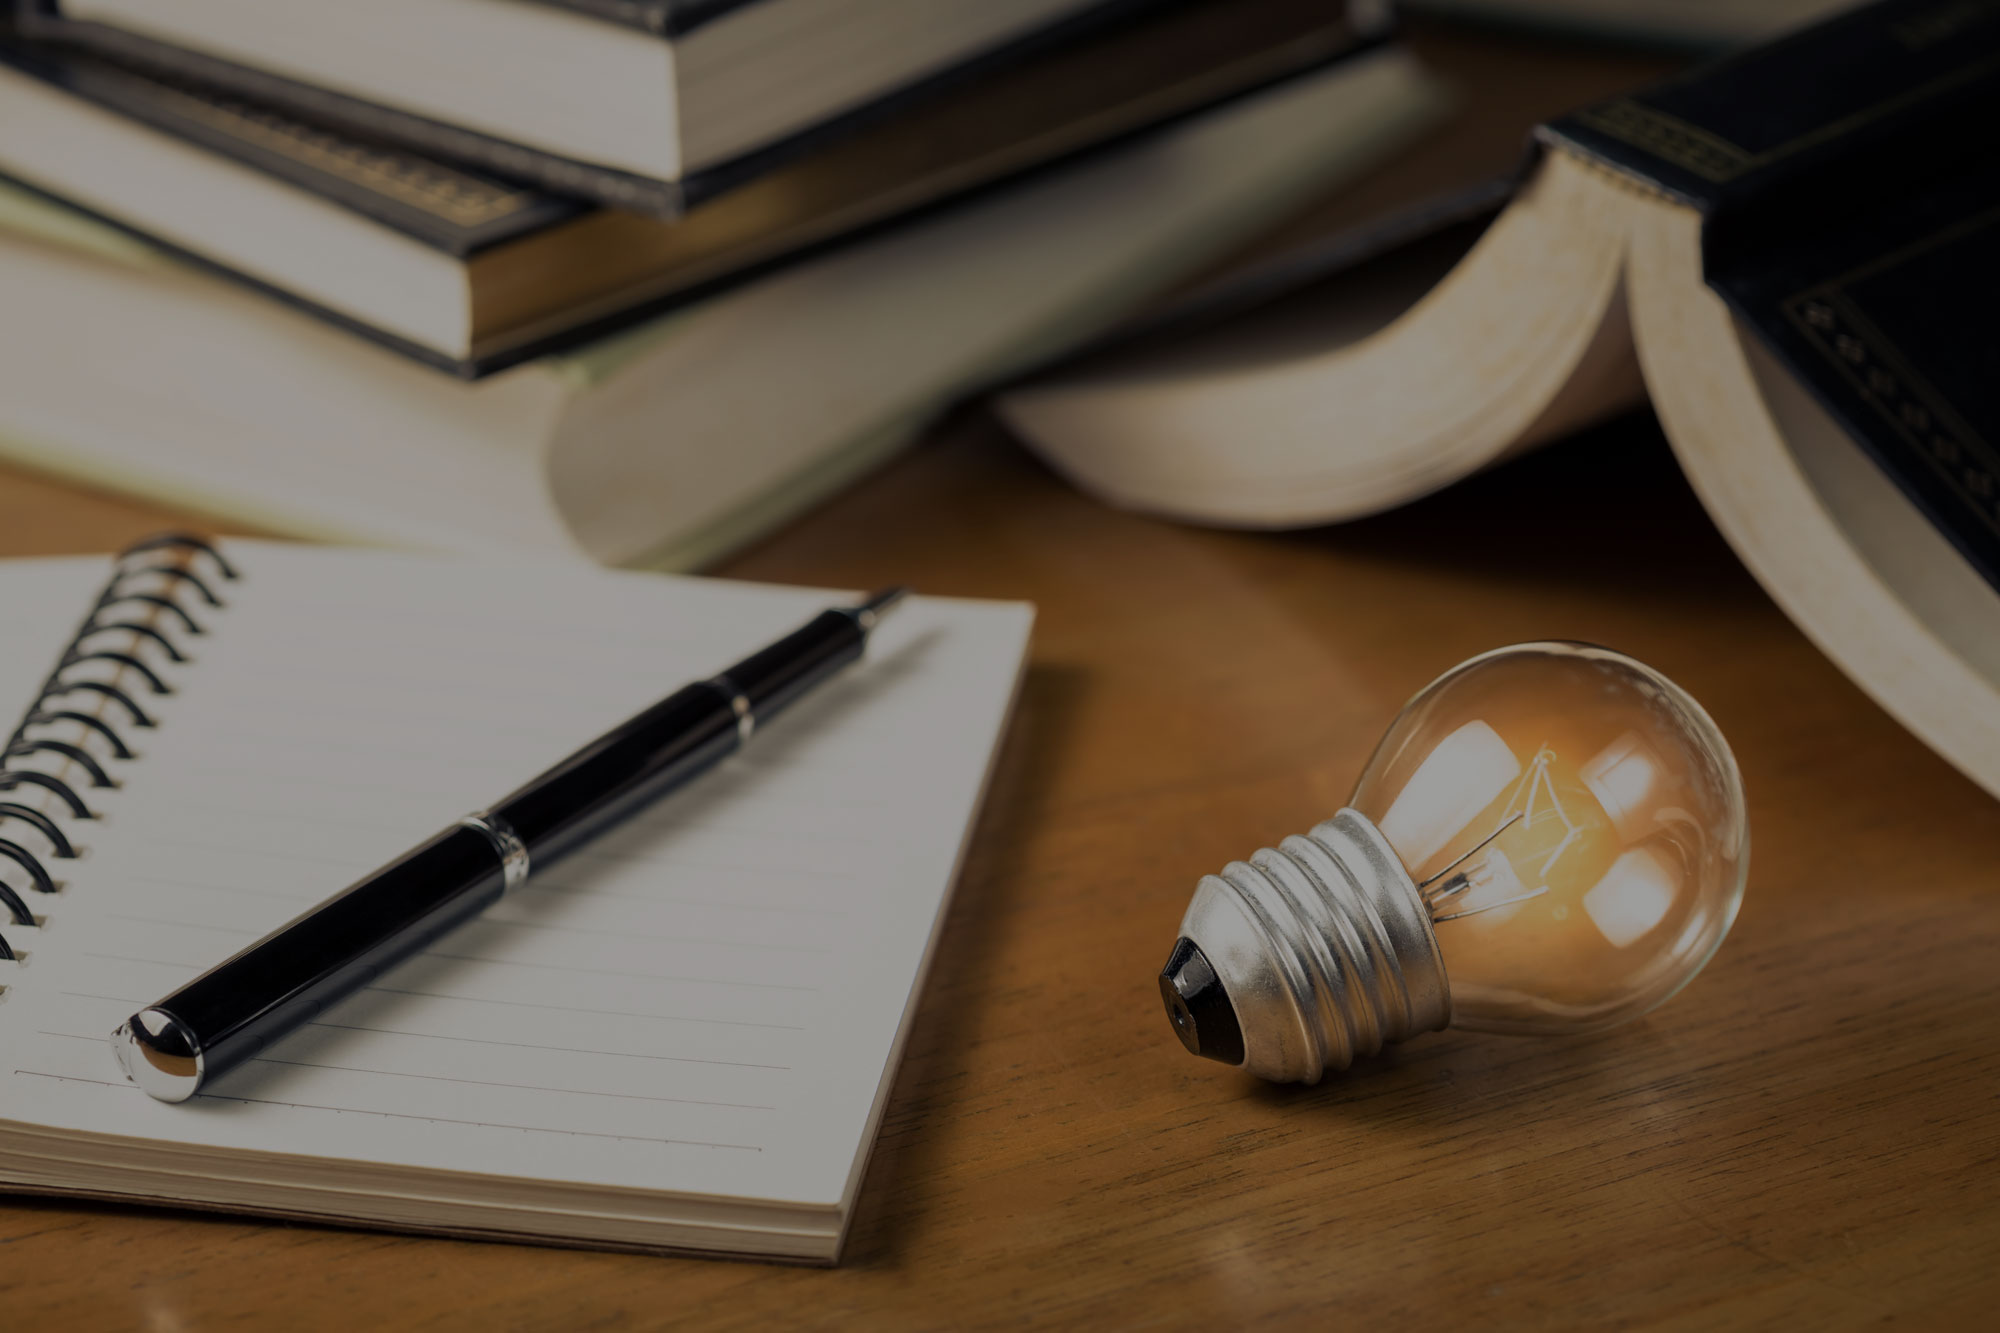 An open notebook with an uncapped pen lying on it, ready for writing. To the right is a lit lightbulb.